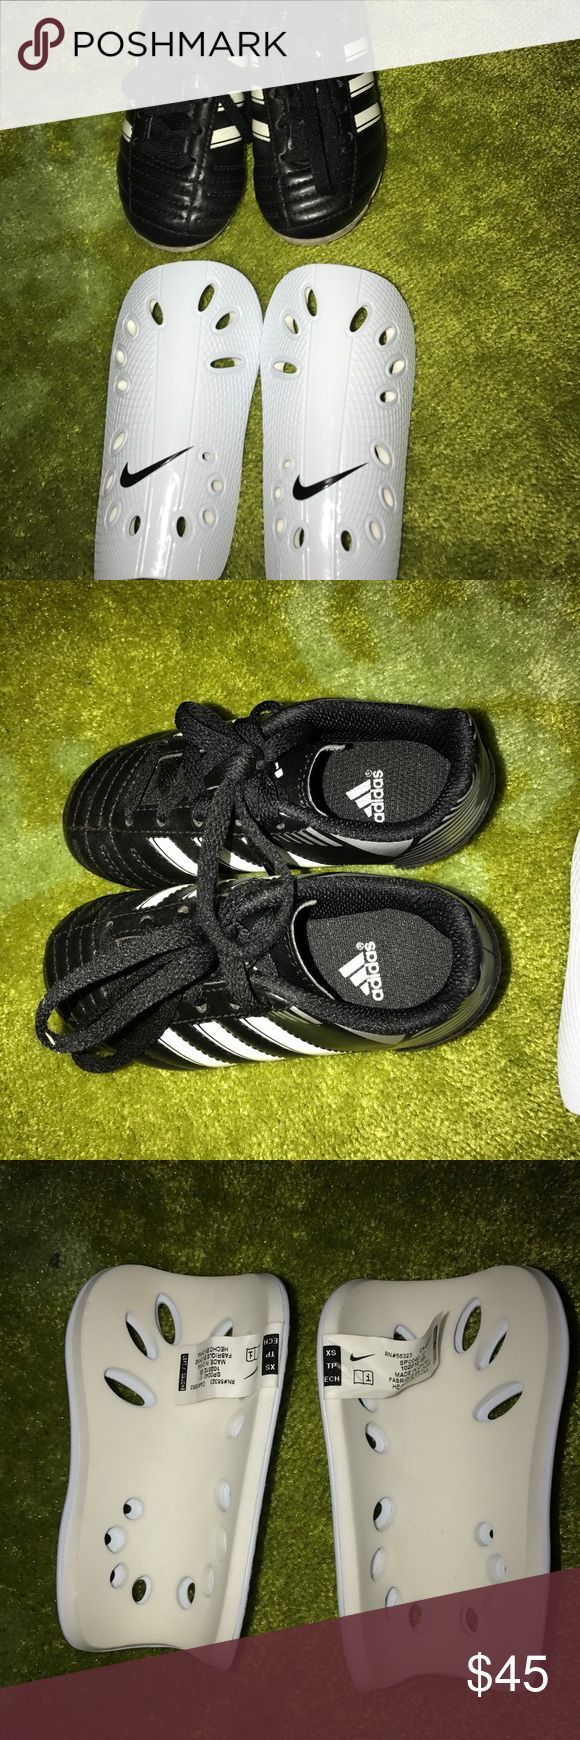 Toddler cleats and shin guard Barely used toddler adidas soccer cleats size 8.5 and Nike shin guard in excellent condition cleats were 60.00 and shin guards 25.00 Adidas Shoes Sneakers